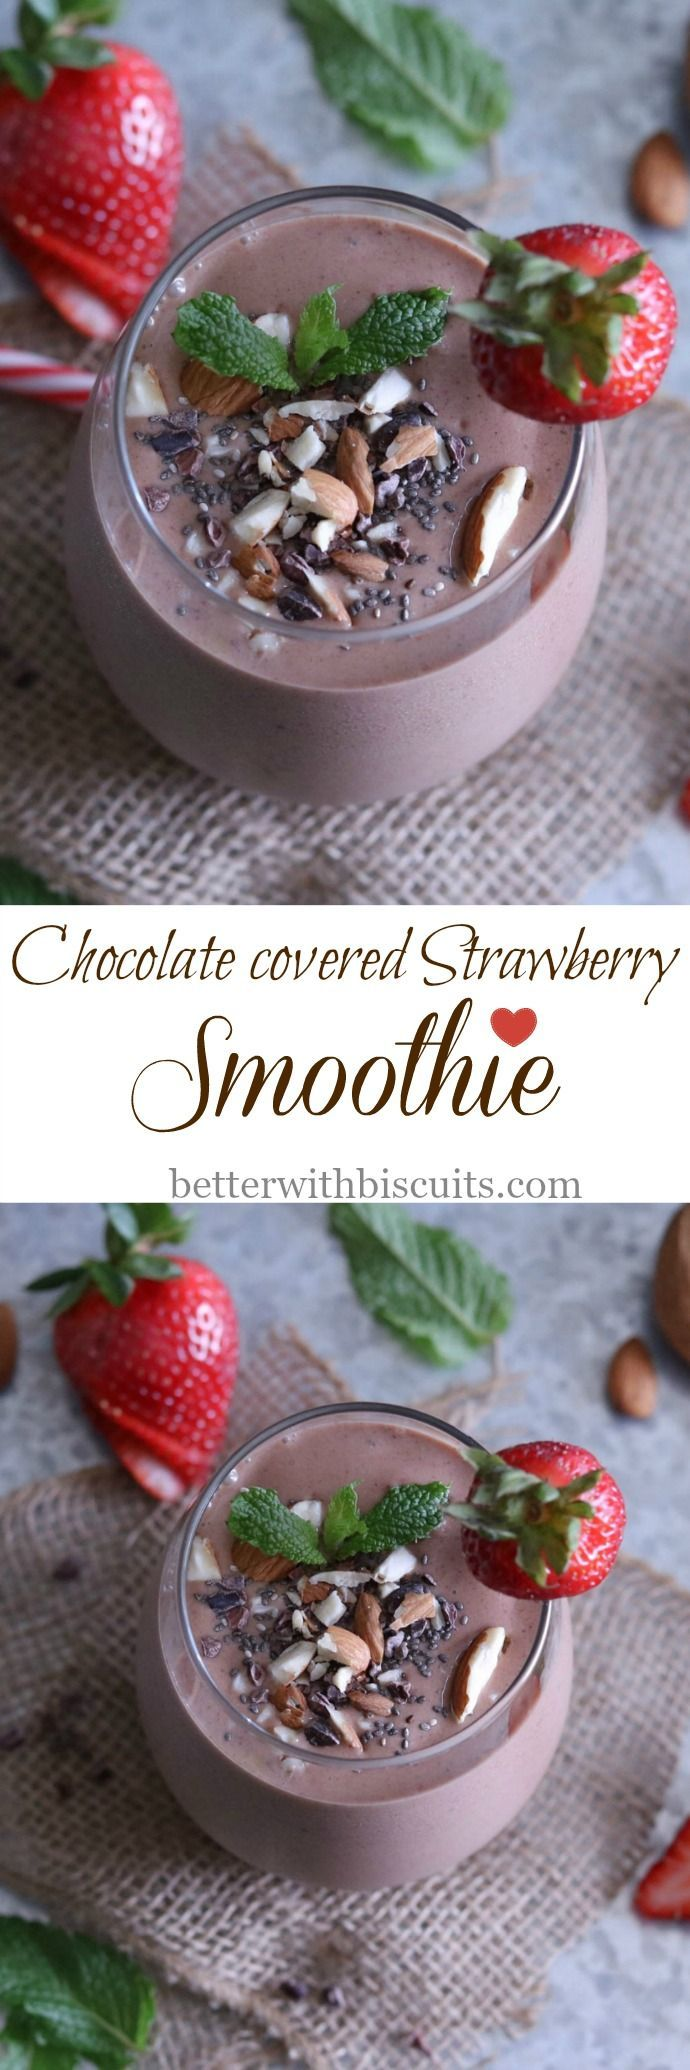 "This decadent smoothie is full of antioxidants, vitamins, and so much more that can help with starting your day off right by boosting serotonin levels the ""feel good"" hormones."